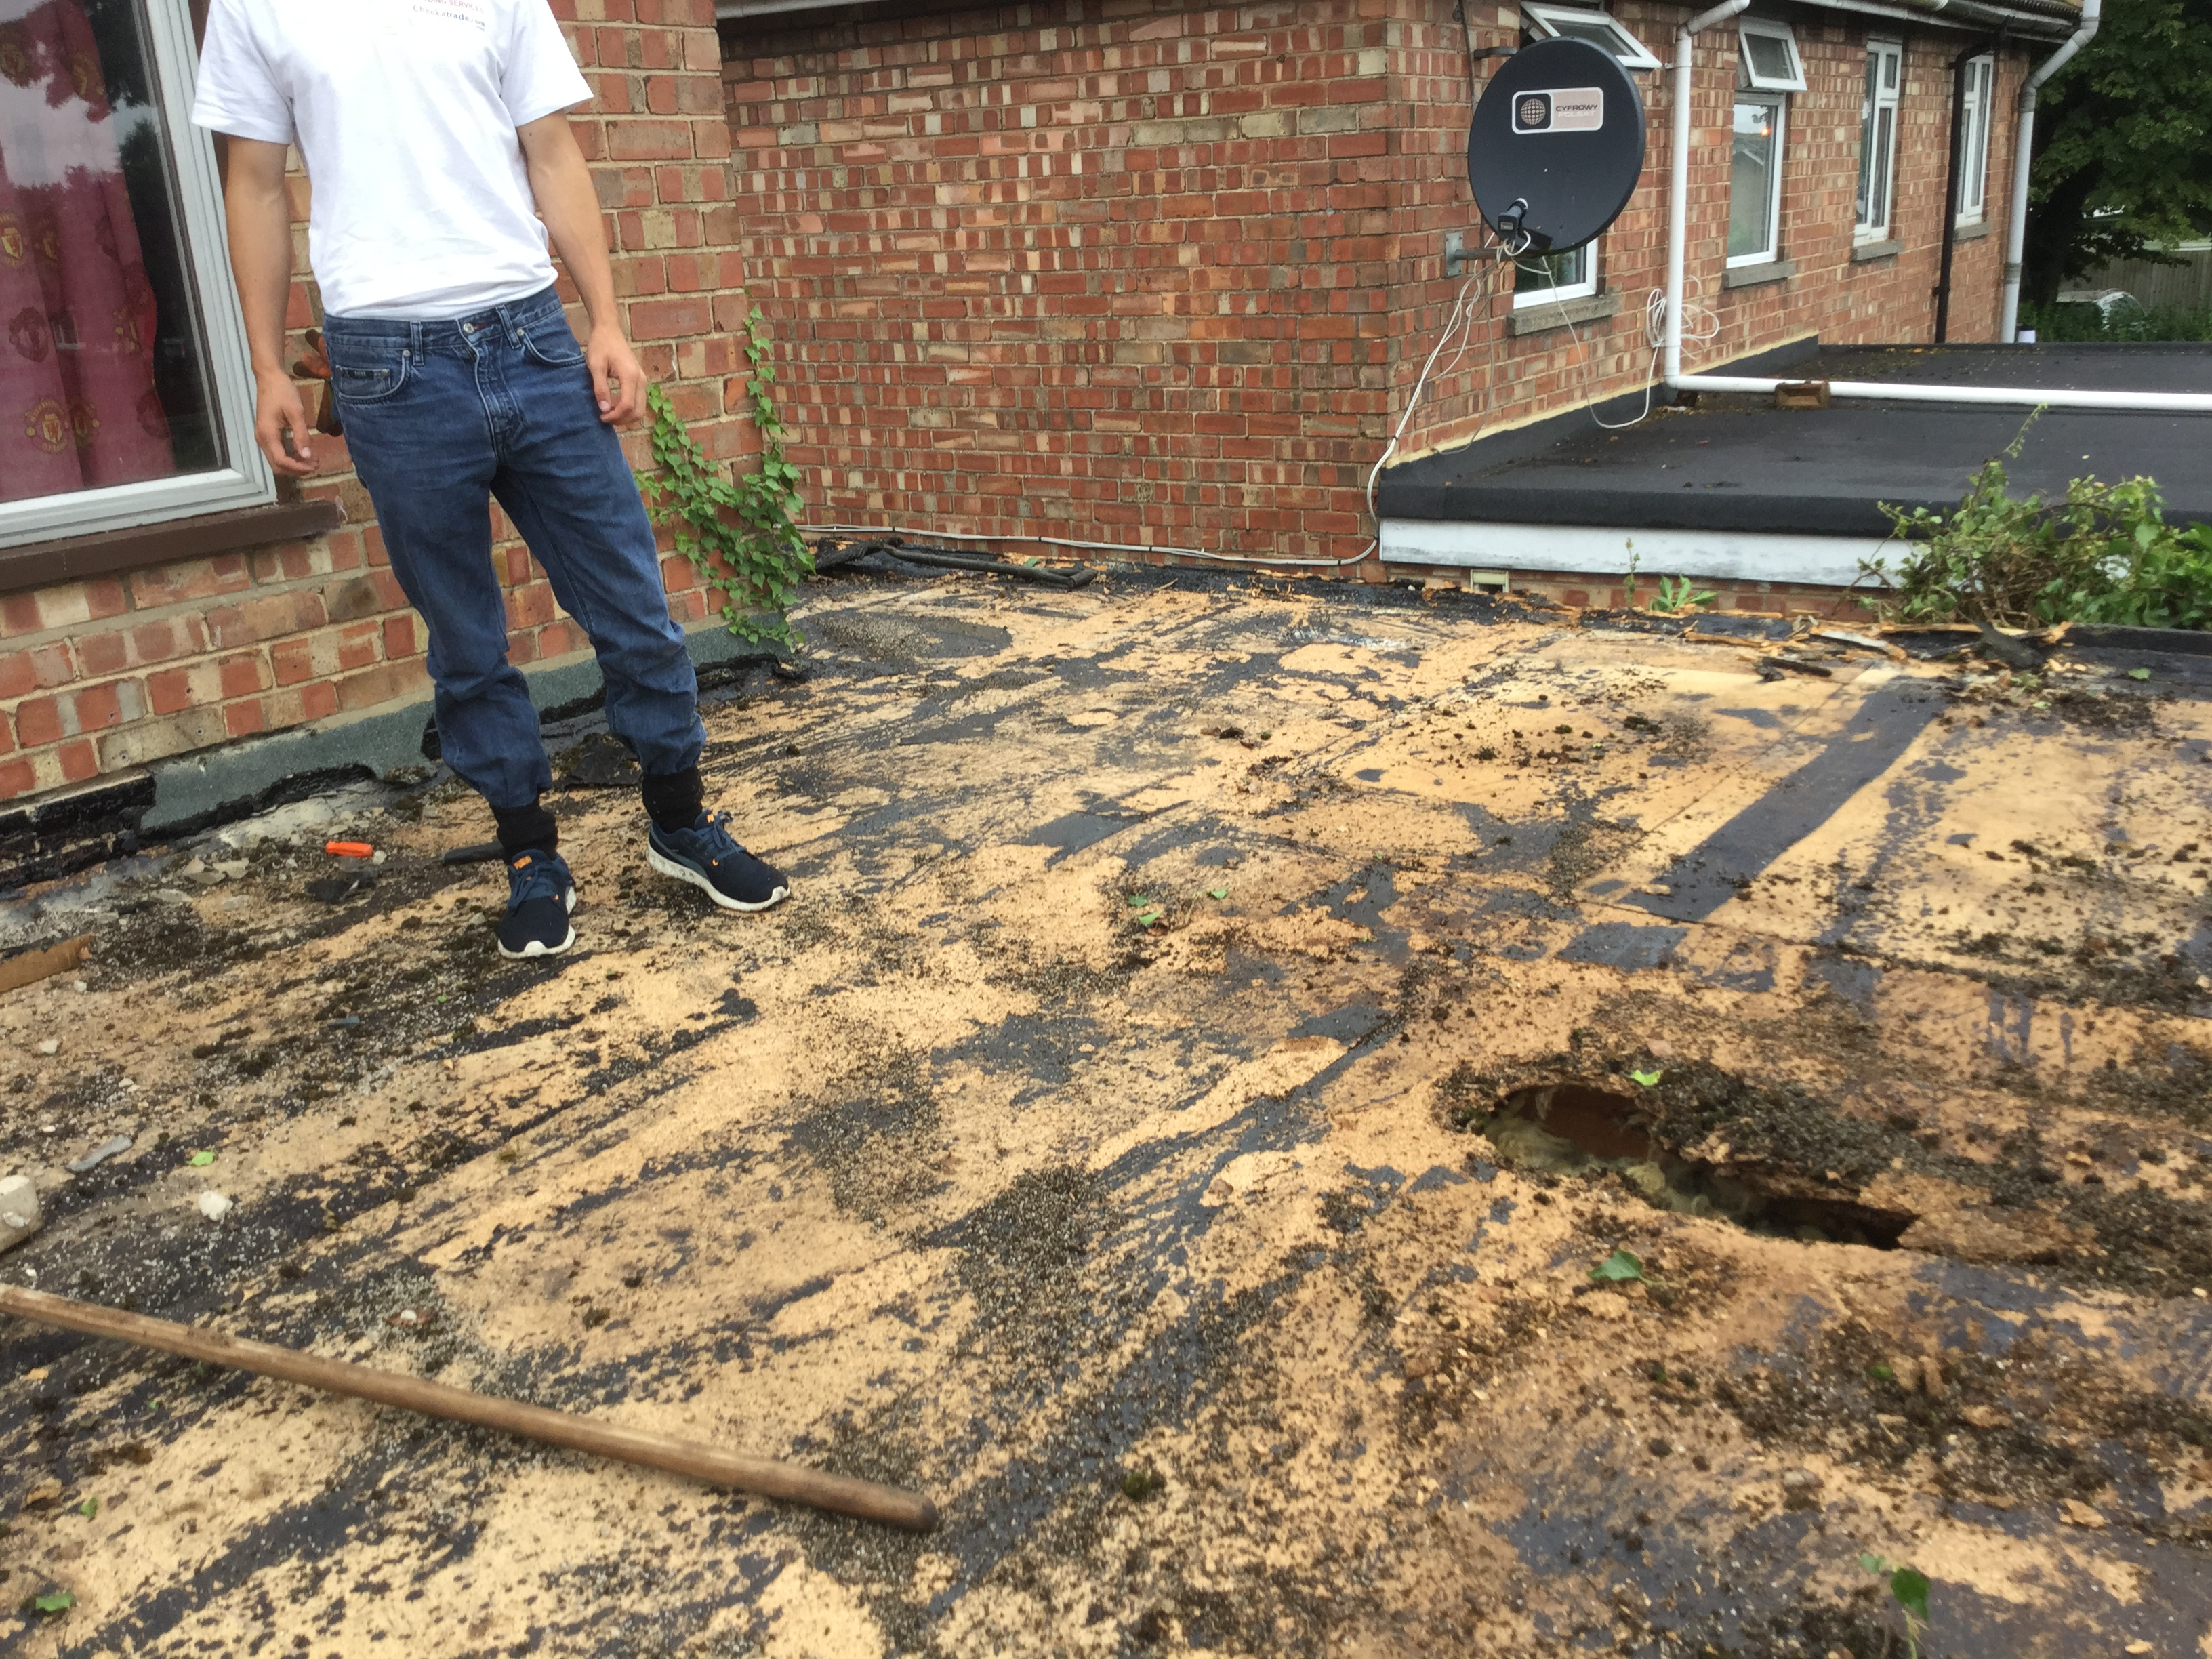 2. Stripping old roof covering